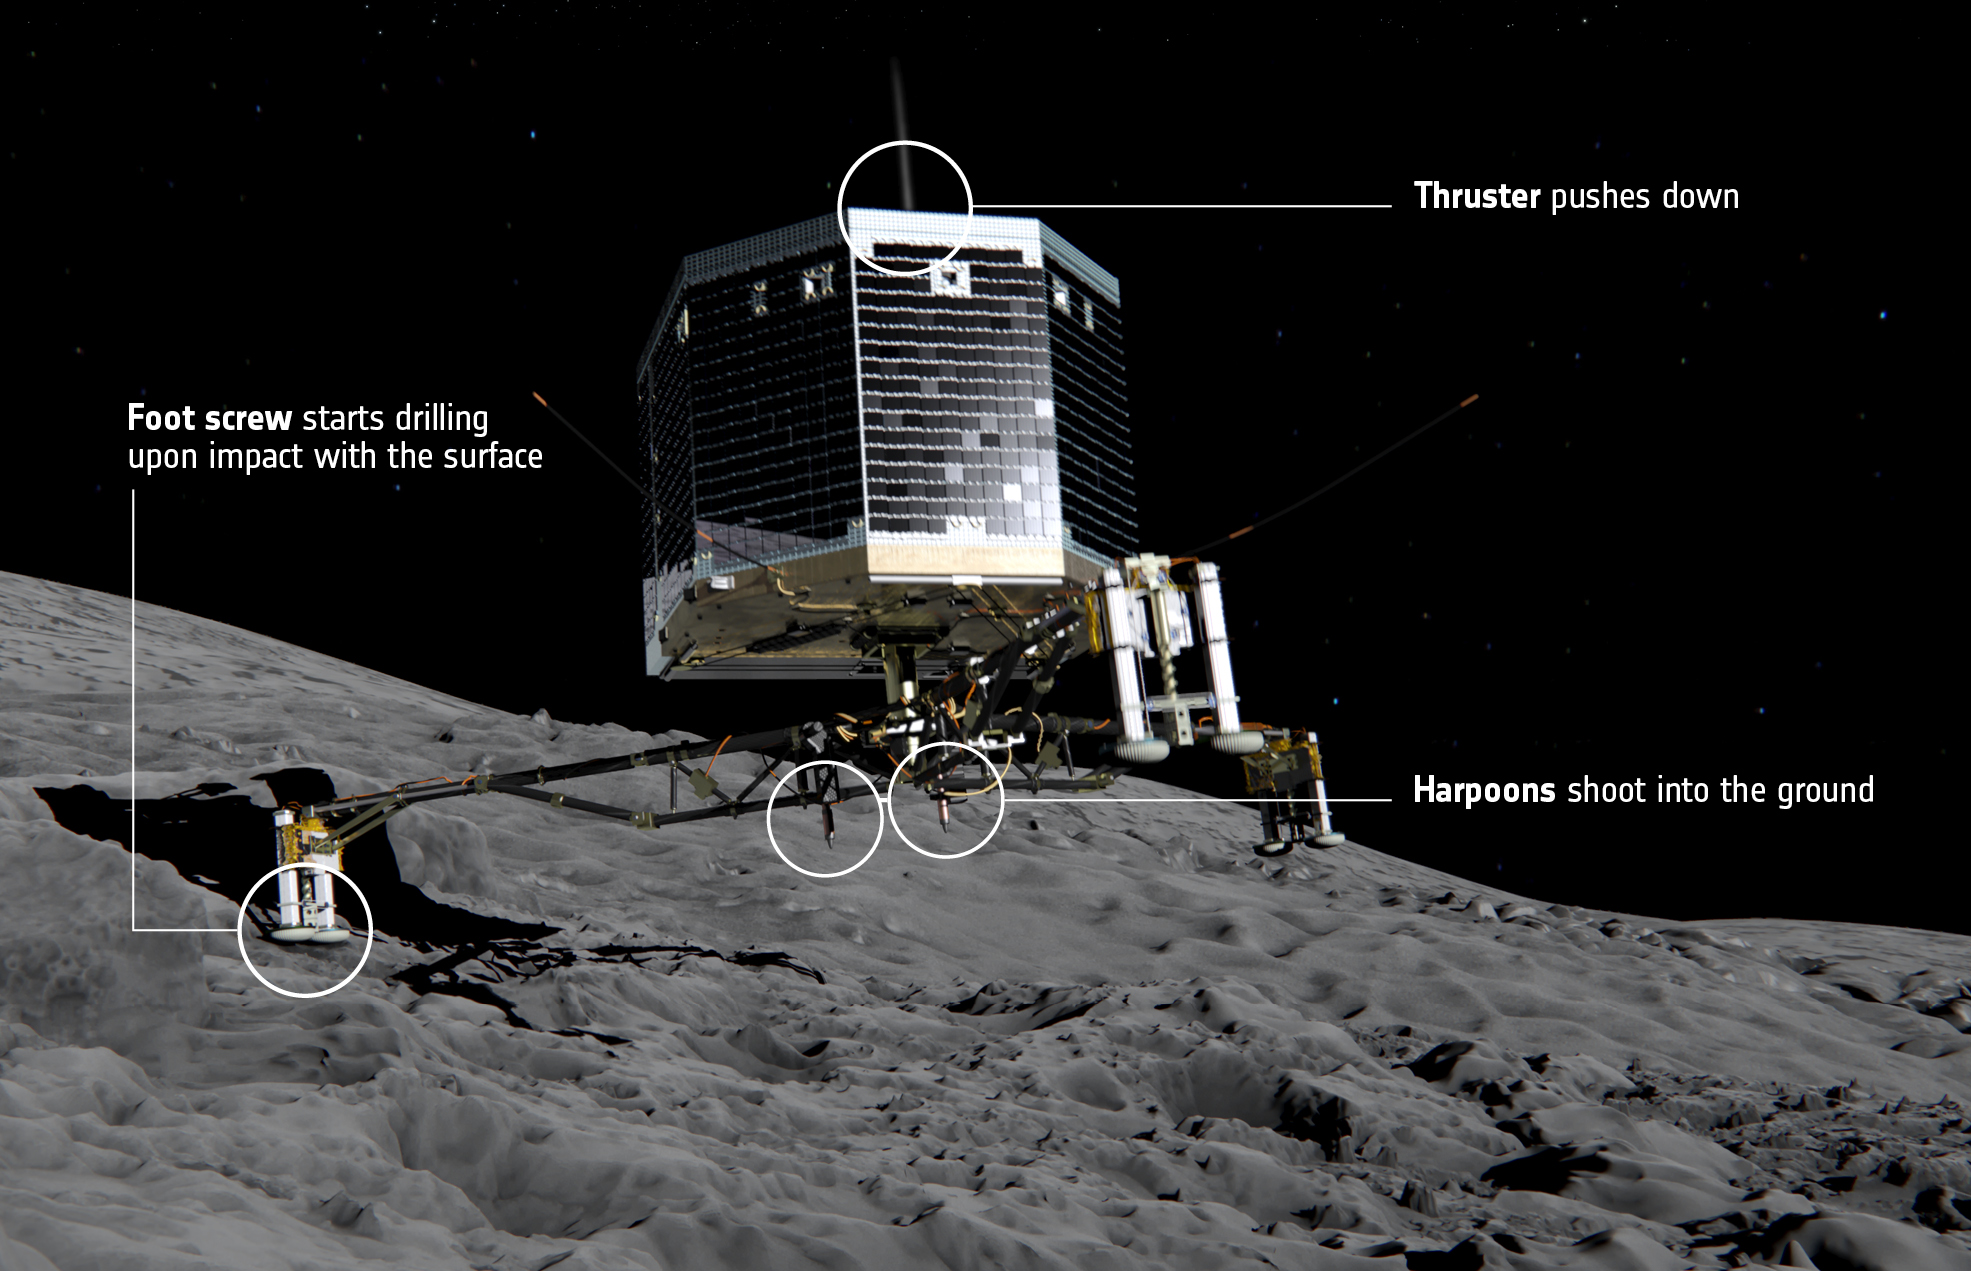 At the moment of touchdown on comet 67P/Churyumov–Gerasimenko, the landing gear will absorb the forces of landing while ice screws in each of the probe's feet and a harpoon system will lock Philae to the surface. At the same time, a thruster on top of the lander was supposed to push it down to counteract the impulse of the harpoon imparted in the opposite direction. Credit: ESA/ATG medialab